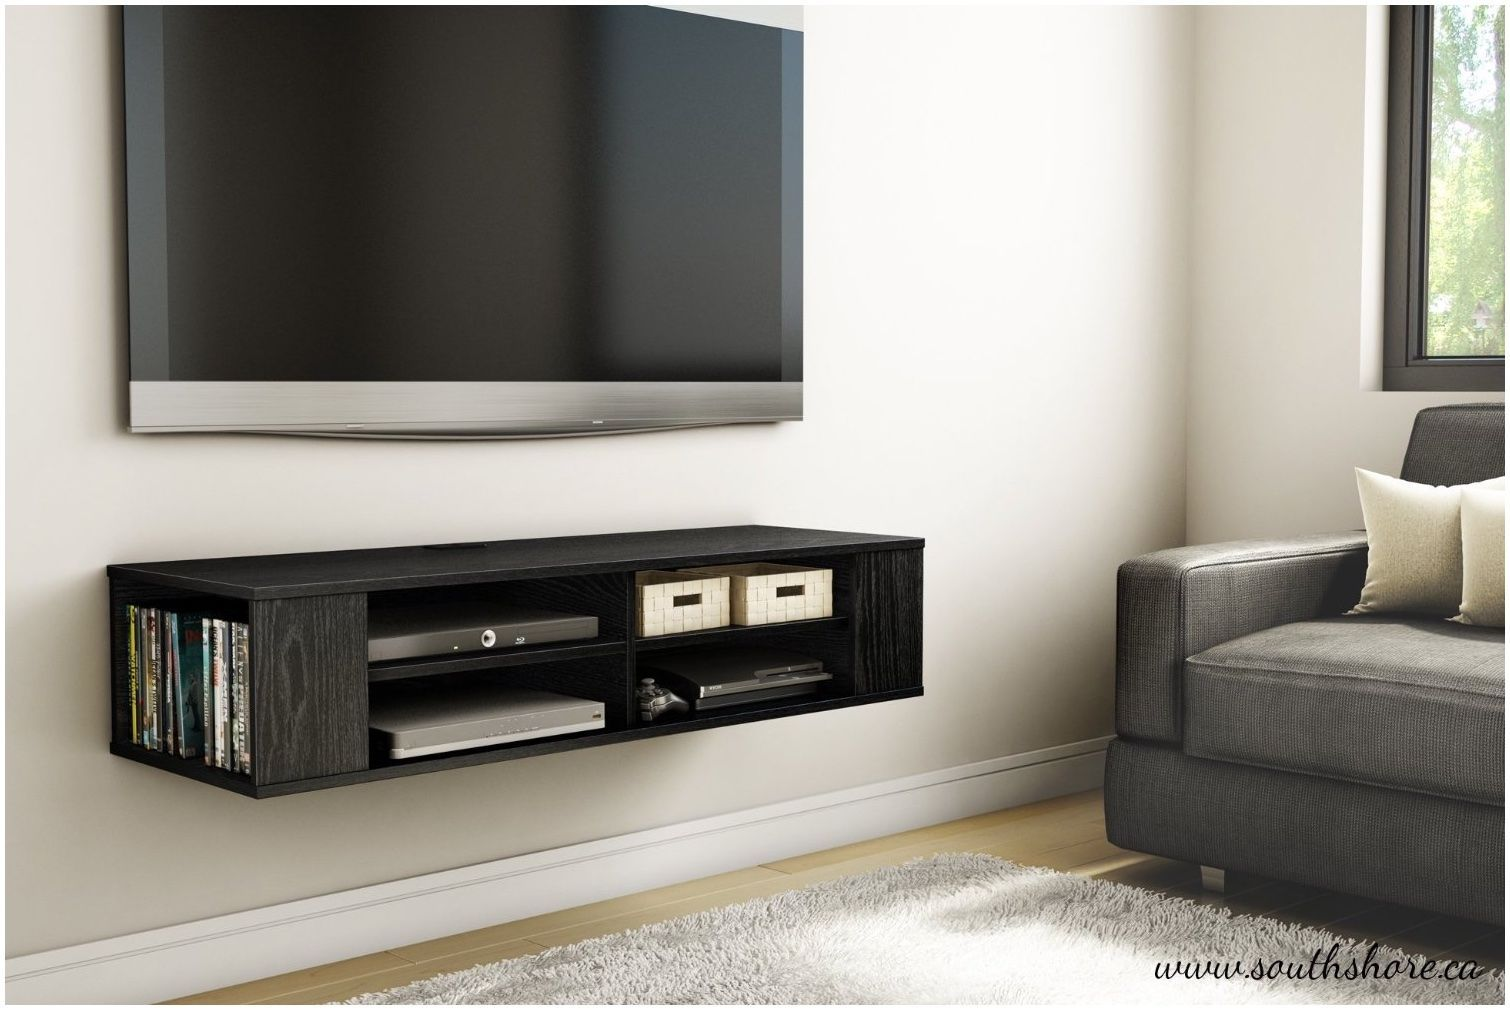 Floating Shelf For Wall Mount Tv Floating Cabinets Wall Mounted